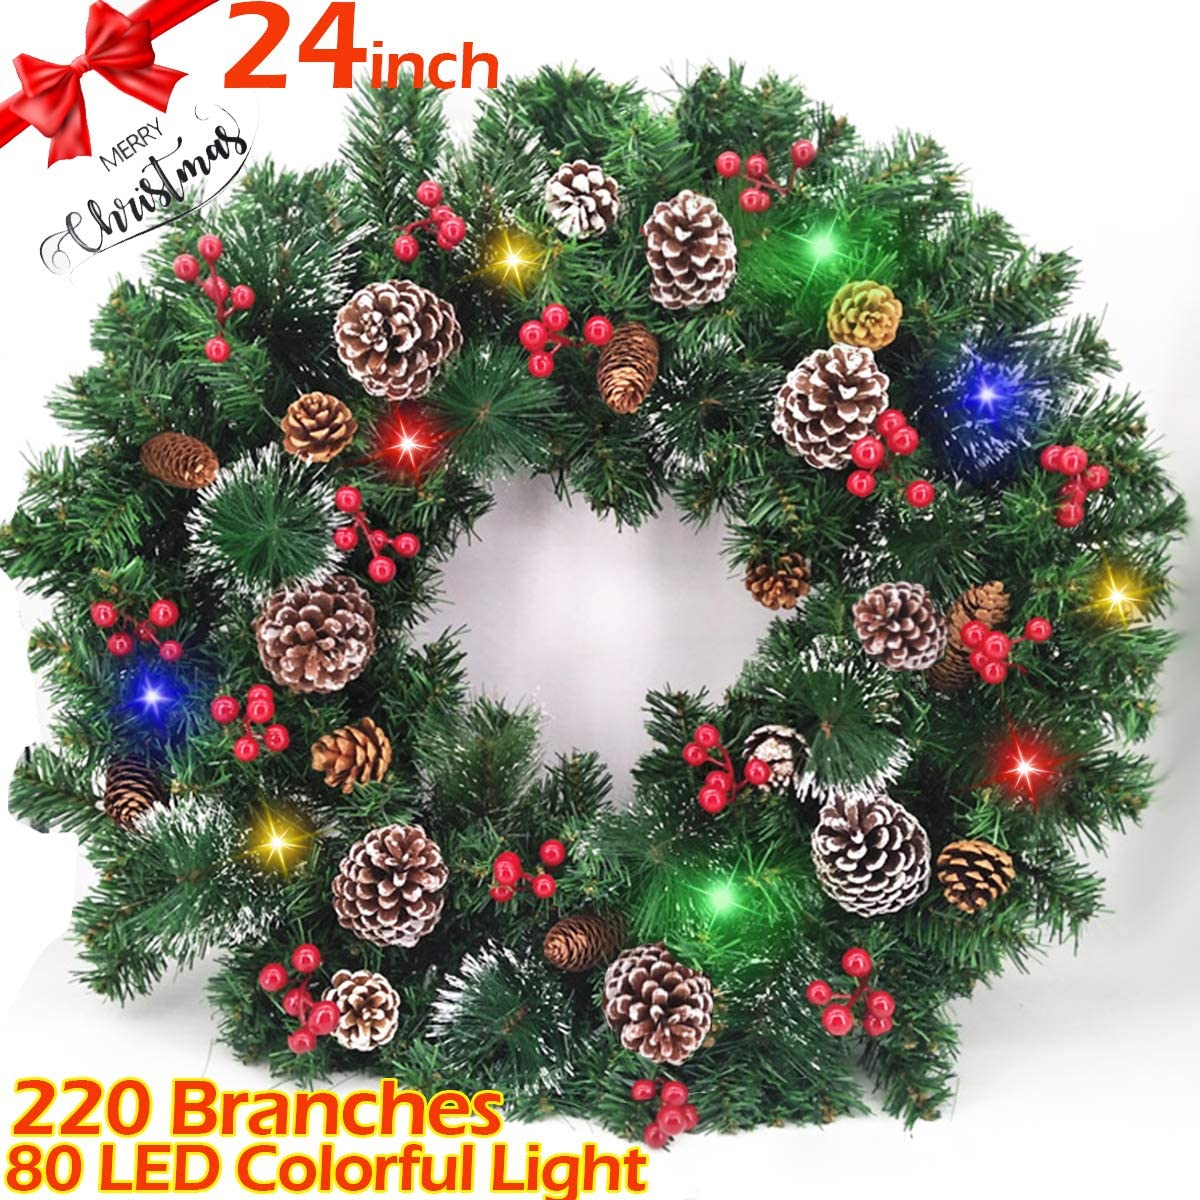 Battery Operated TURNMEON 30 Inch Christmas Wreath Garland with 80 Colorful LED Lights Pre-Lit Wreath Artificial Snowflakes Pine Cone Red Berry Christmas Decoration for Front Door